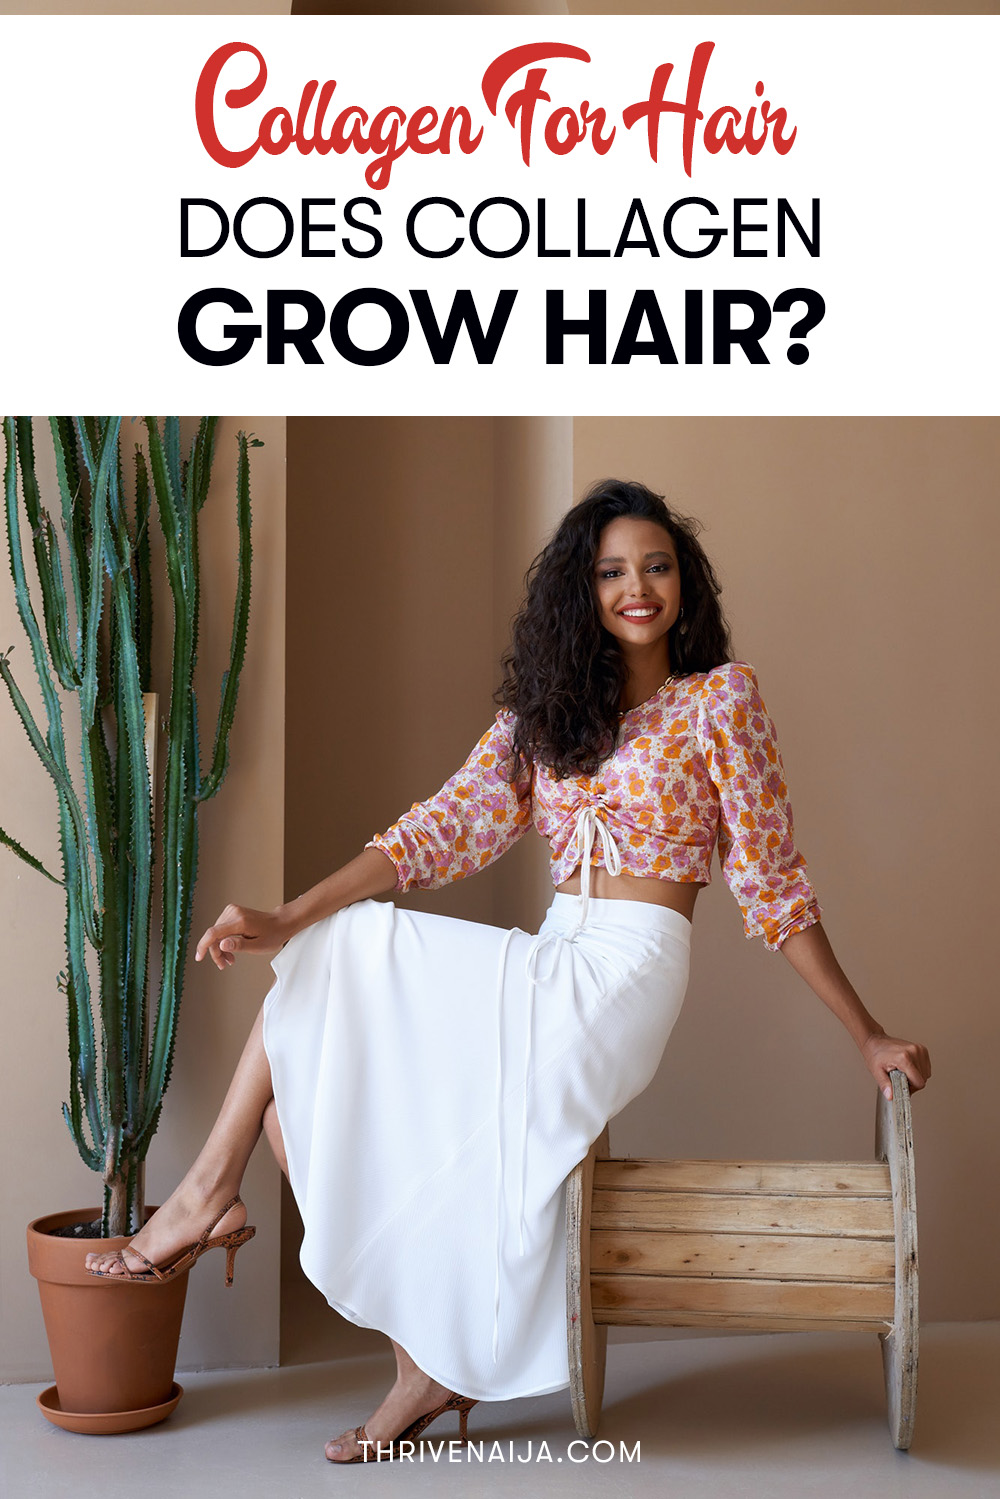 Collagen For Hair: Does Collagen Grow Hair?